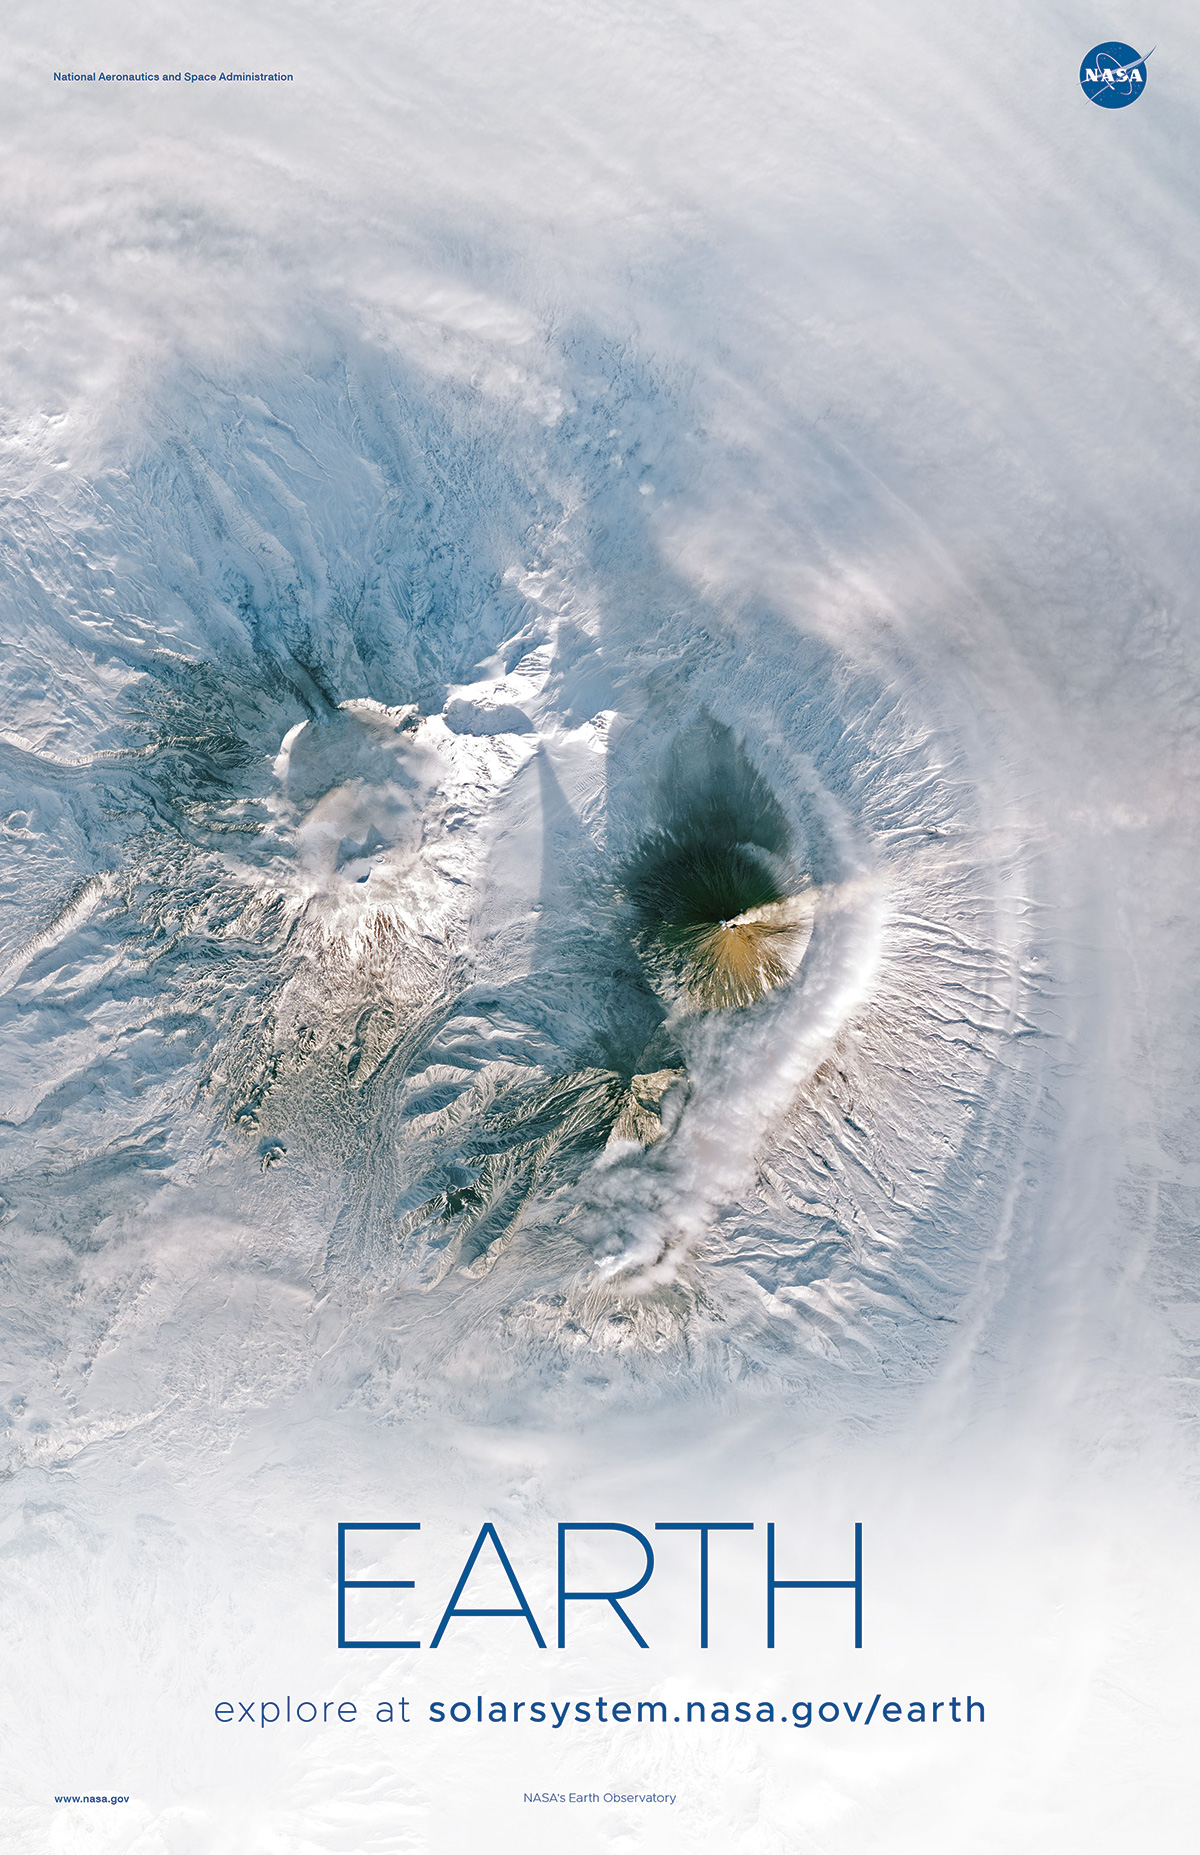 Orbital view of smoking volcano amid snowcapped peaks.